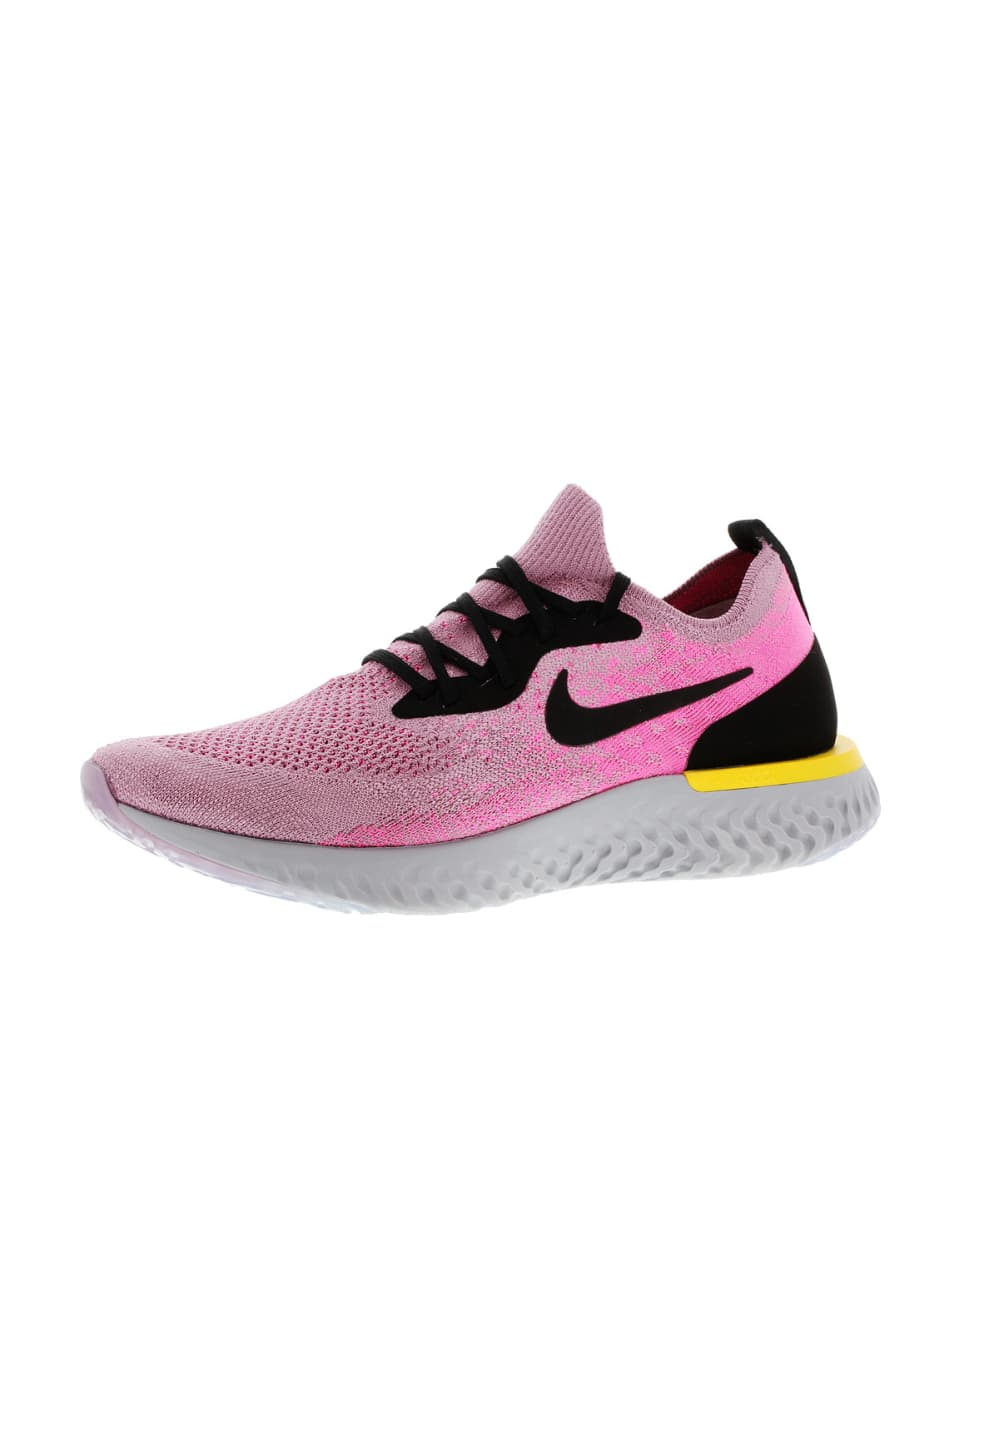 Nike Running Rose Femme Odyssey Pour React Chaussures Yyfgb76v